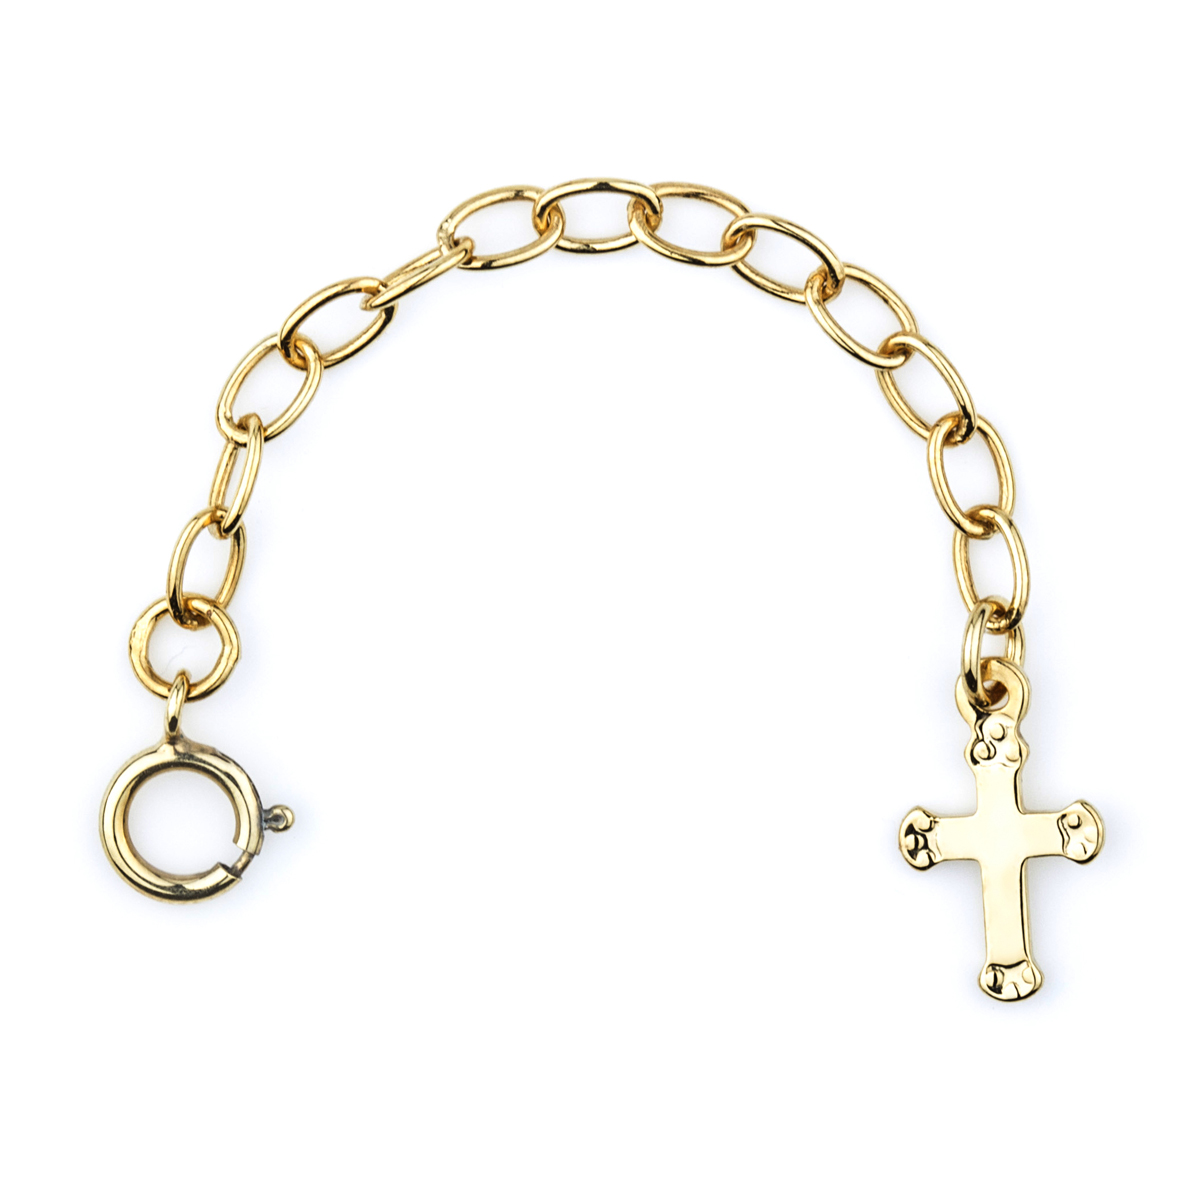 2 5in goldtone necklace extender cross charm